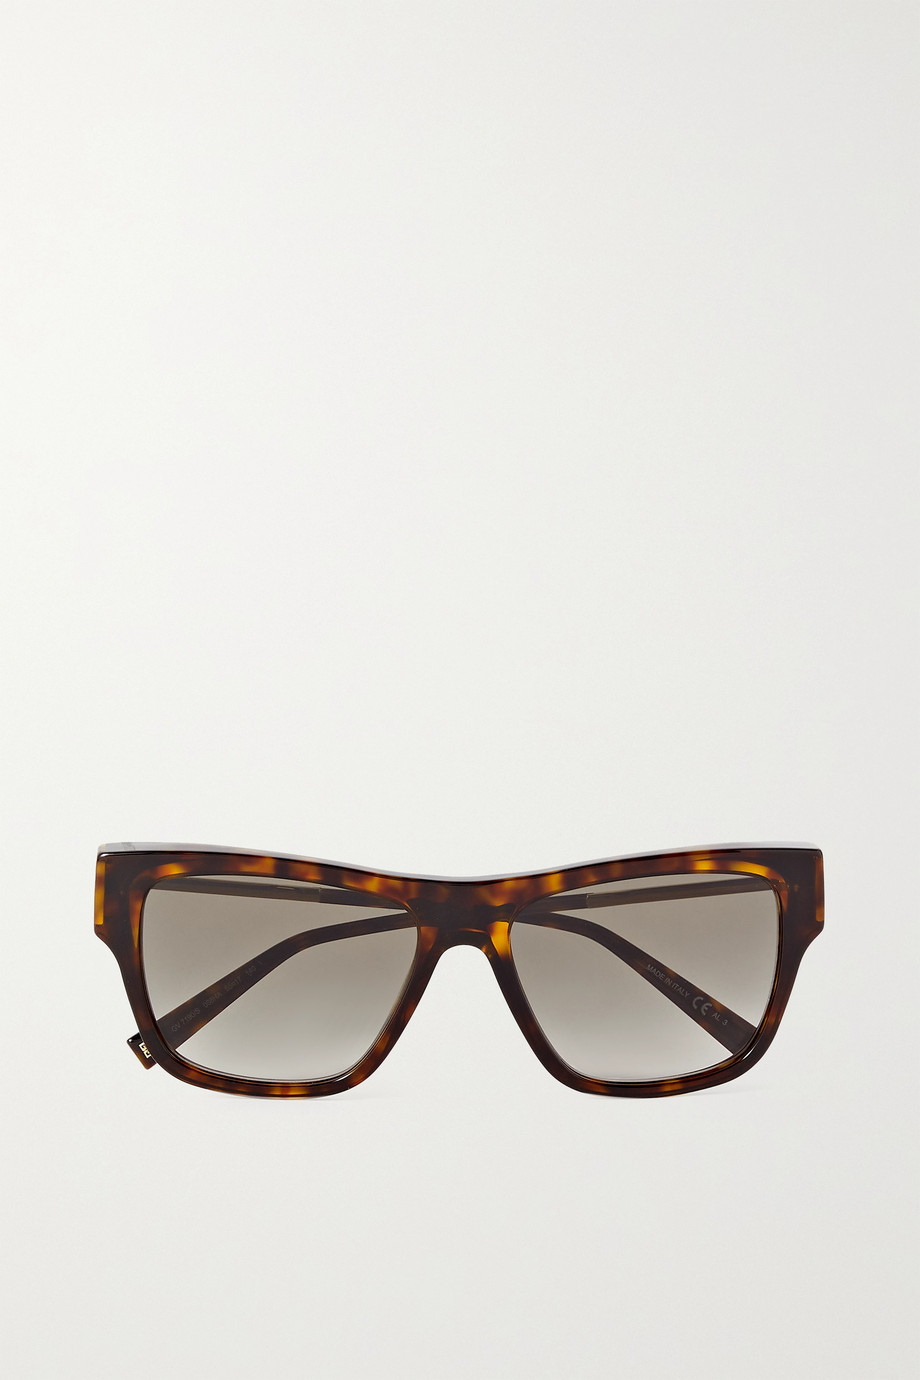 GIVENCHY Oversized D-frame tortoiseshell acetate and gold-tone sunglasses